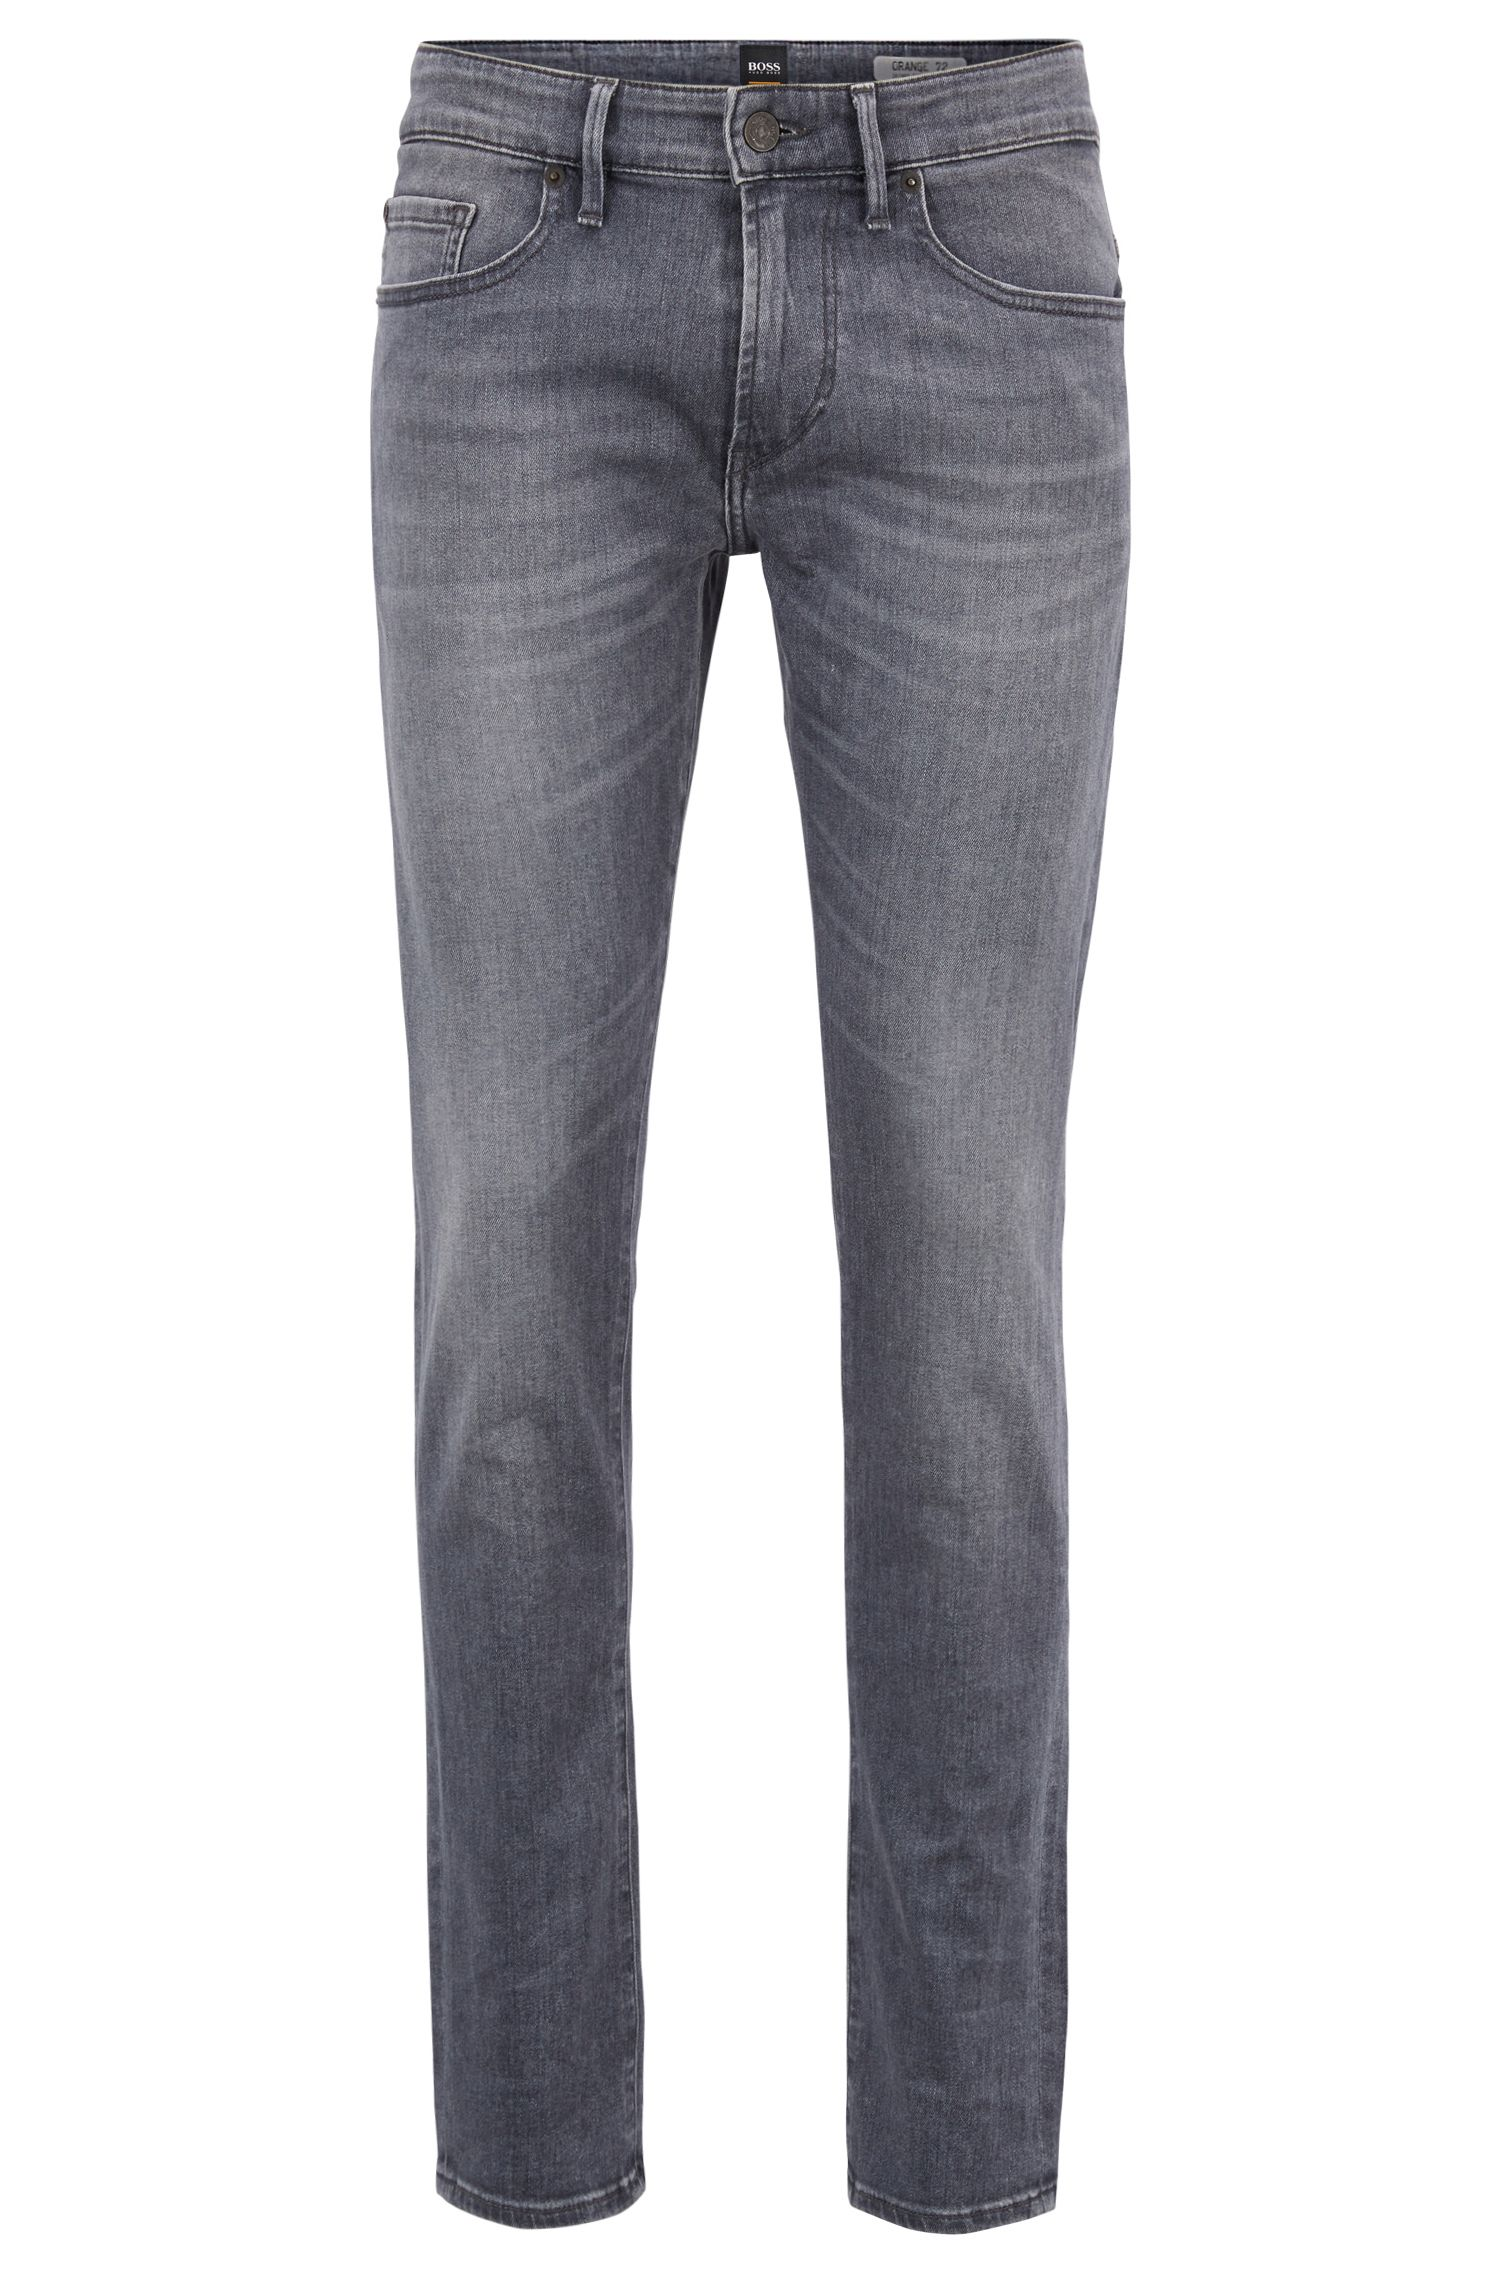 Jeans Skinny Fit en denim stretch gris